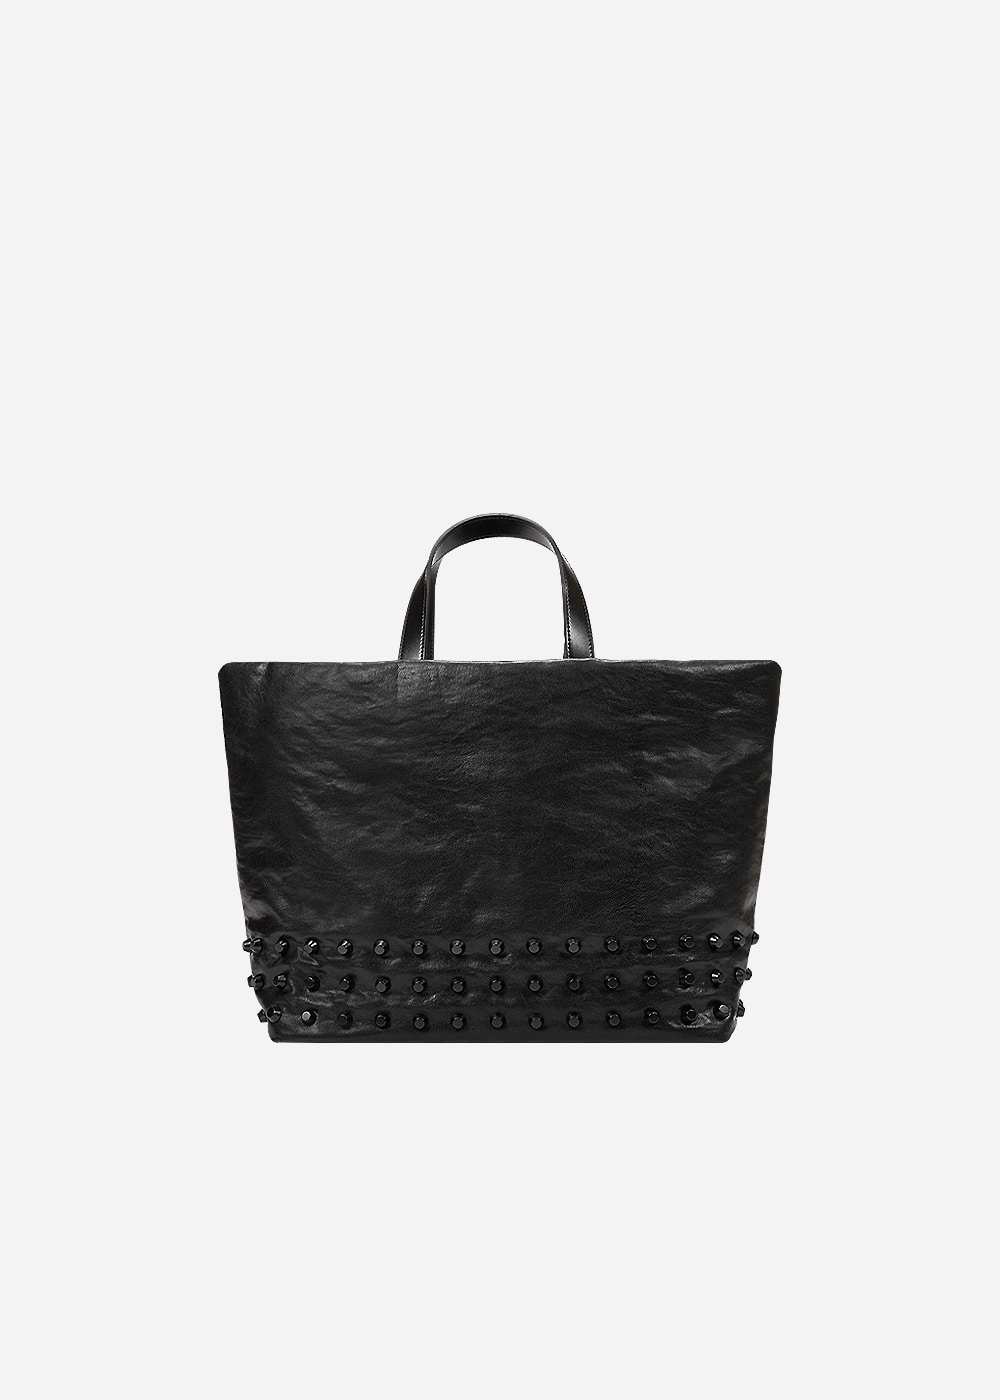 Stud Tote Black Medium